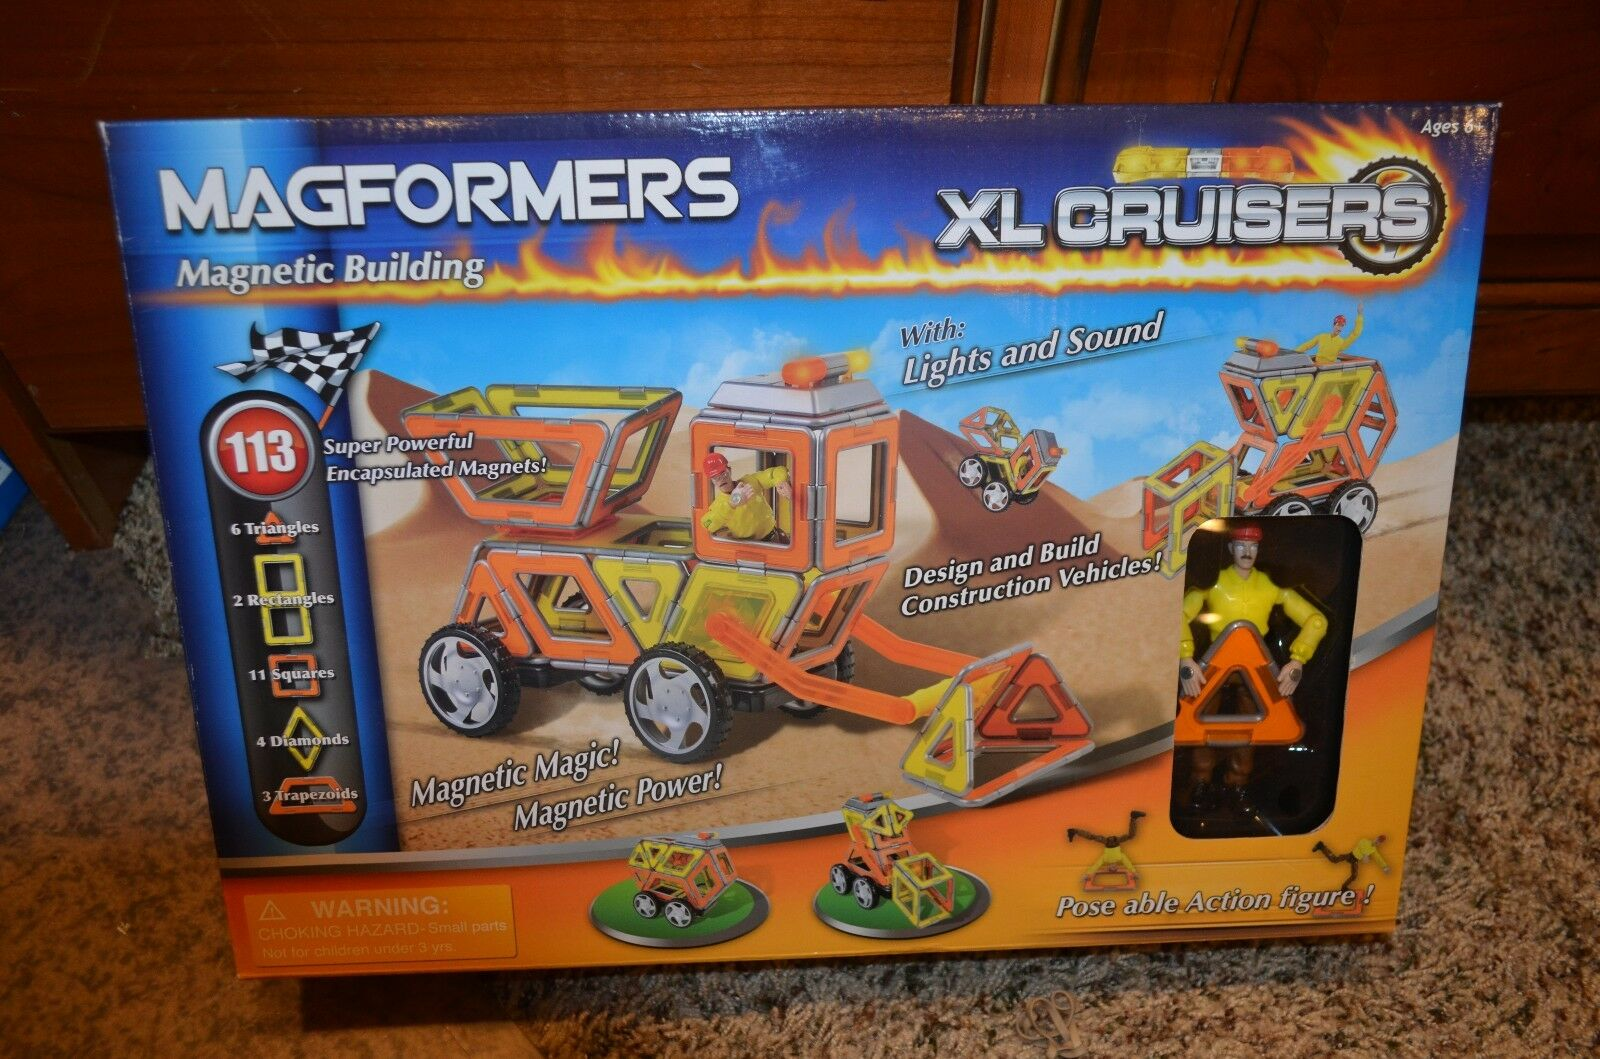 MAGFORMERS XL CRUISERS MAGNETIC 113 PIECE SET NEW UNOPENED DATED JULY 16 2010